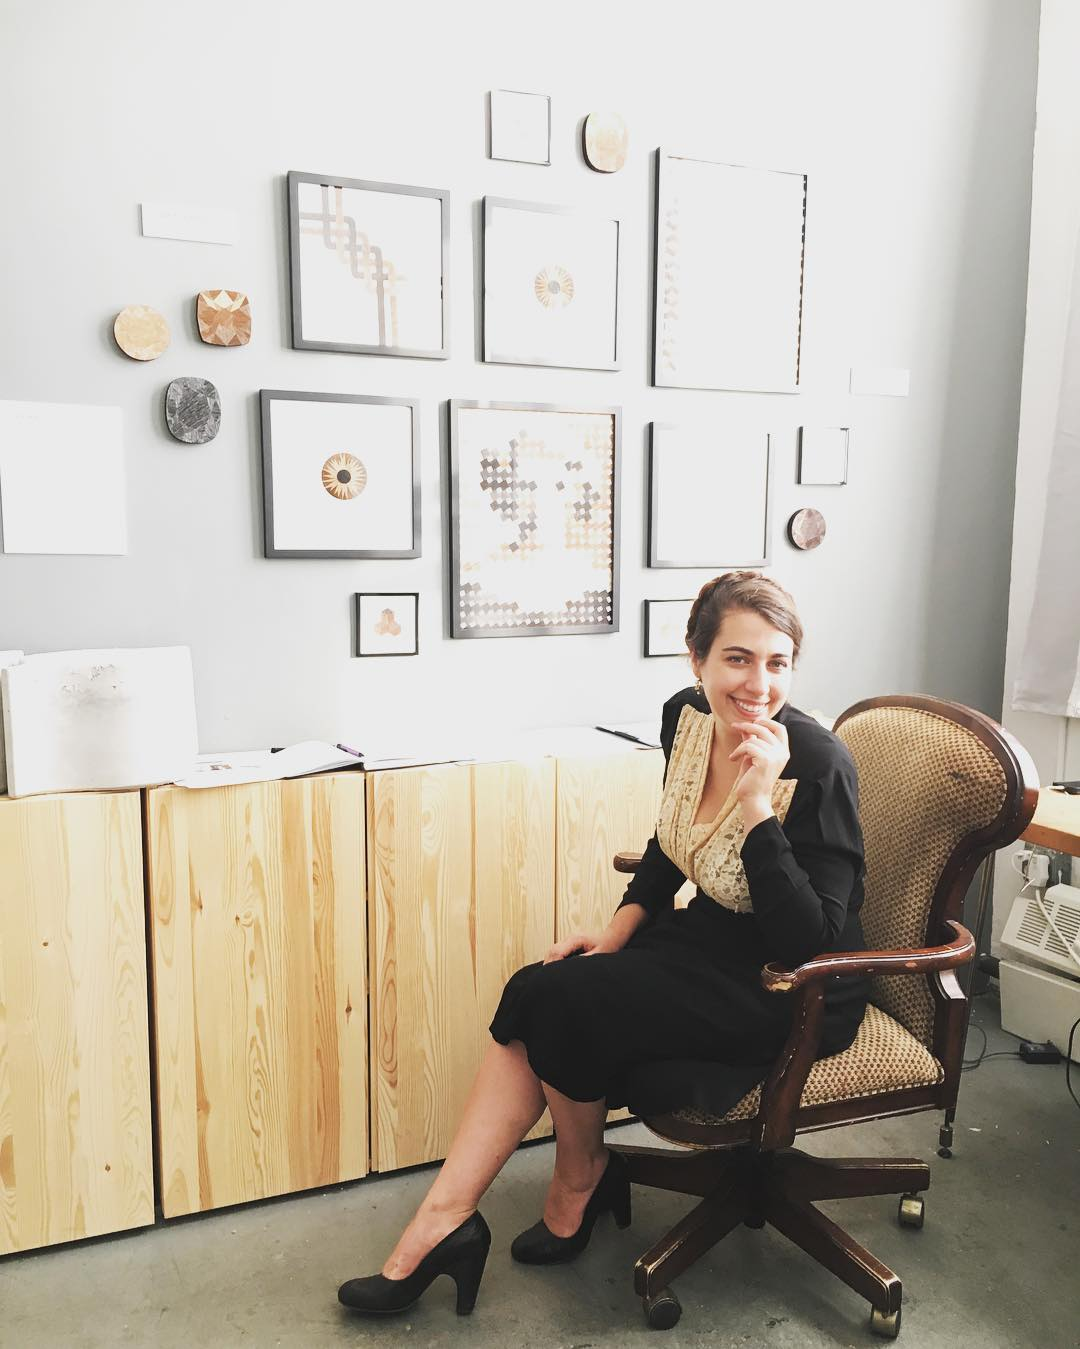 Spencer Merolla in her studio. Photo credit: Lulu Yee